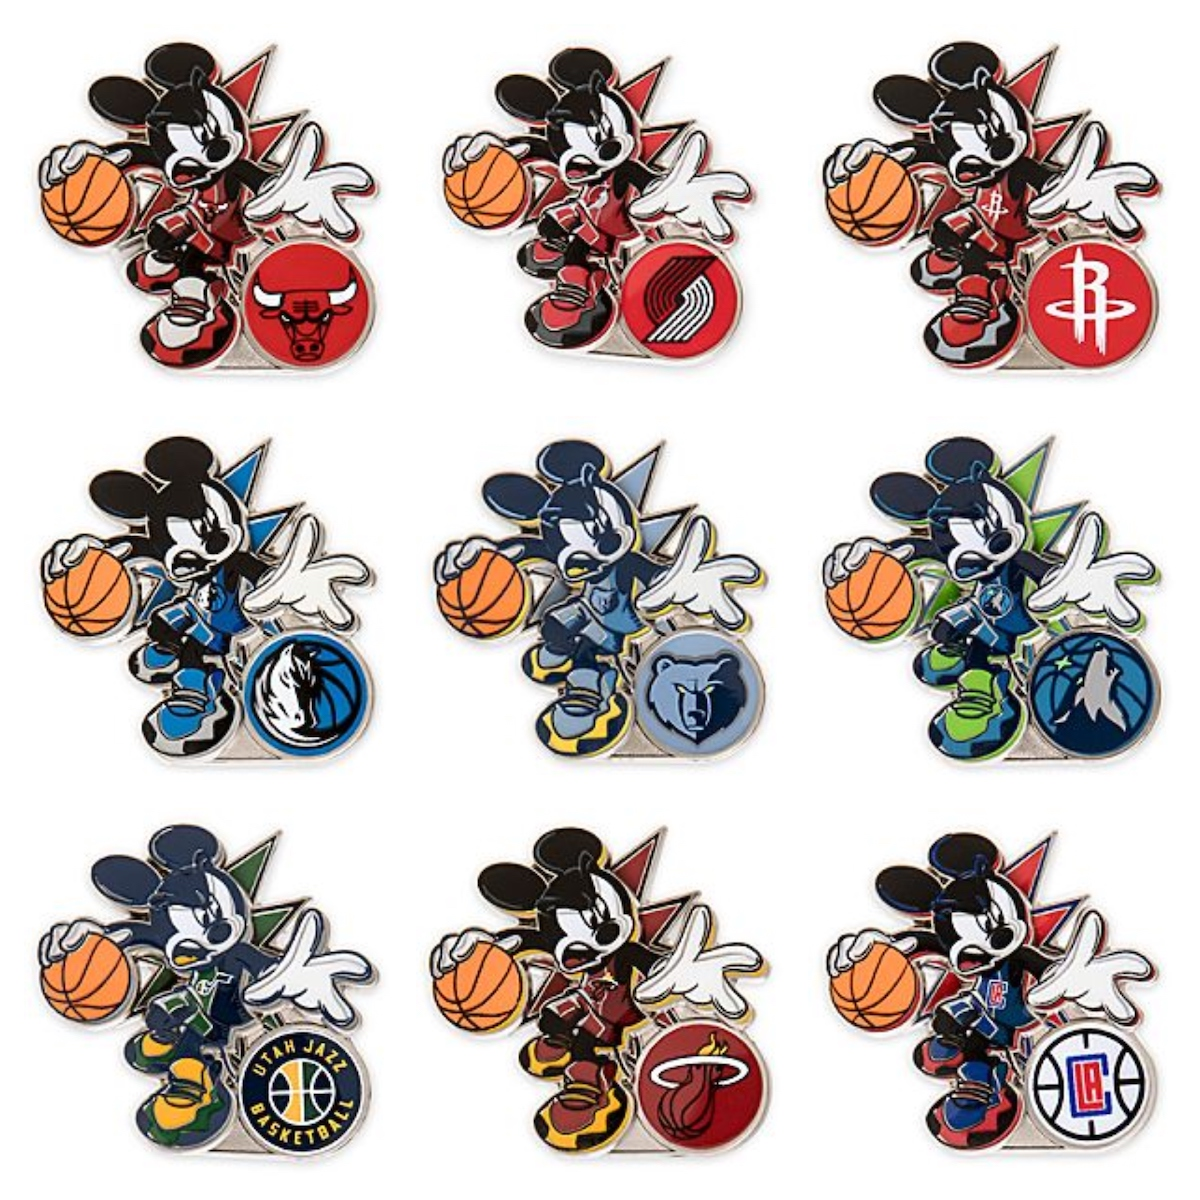 NBA Experience Mickey Mouse Disney Pin Collection